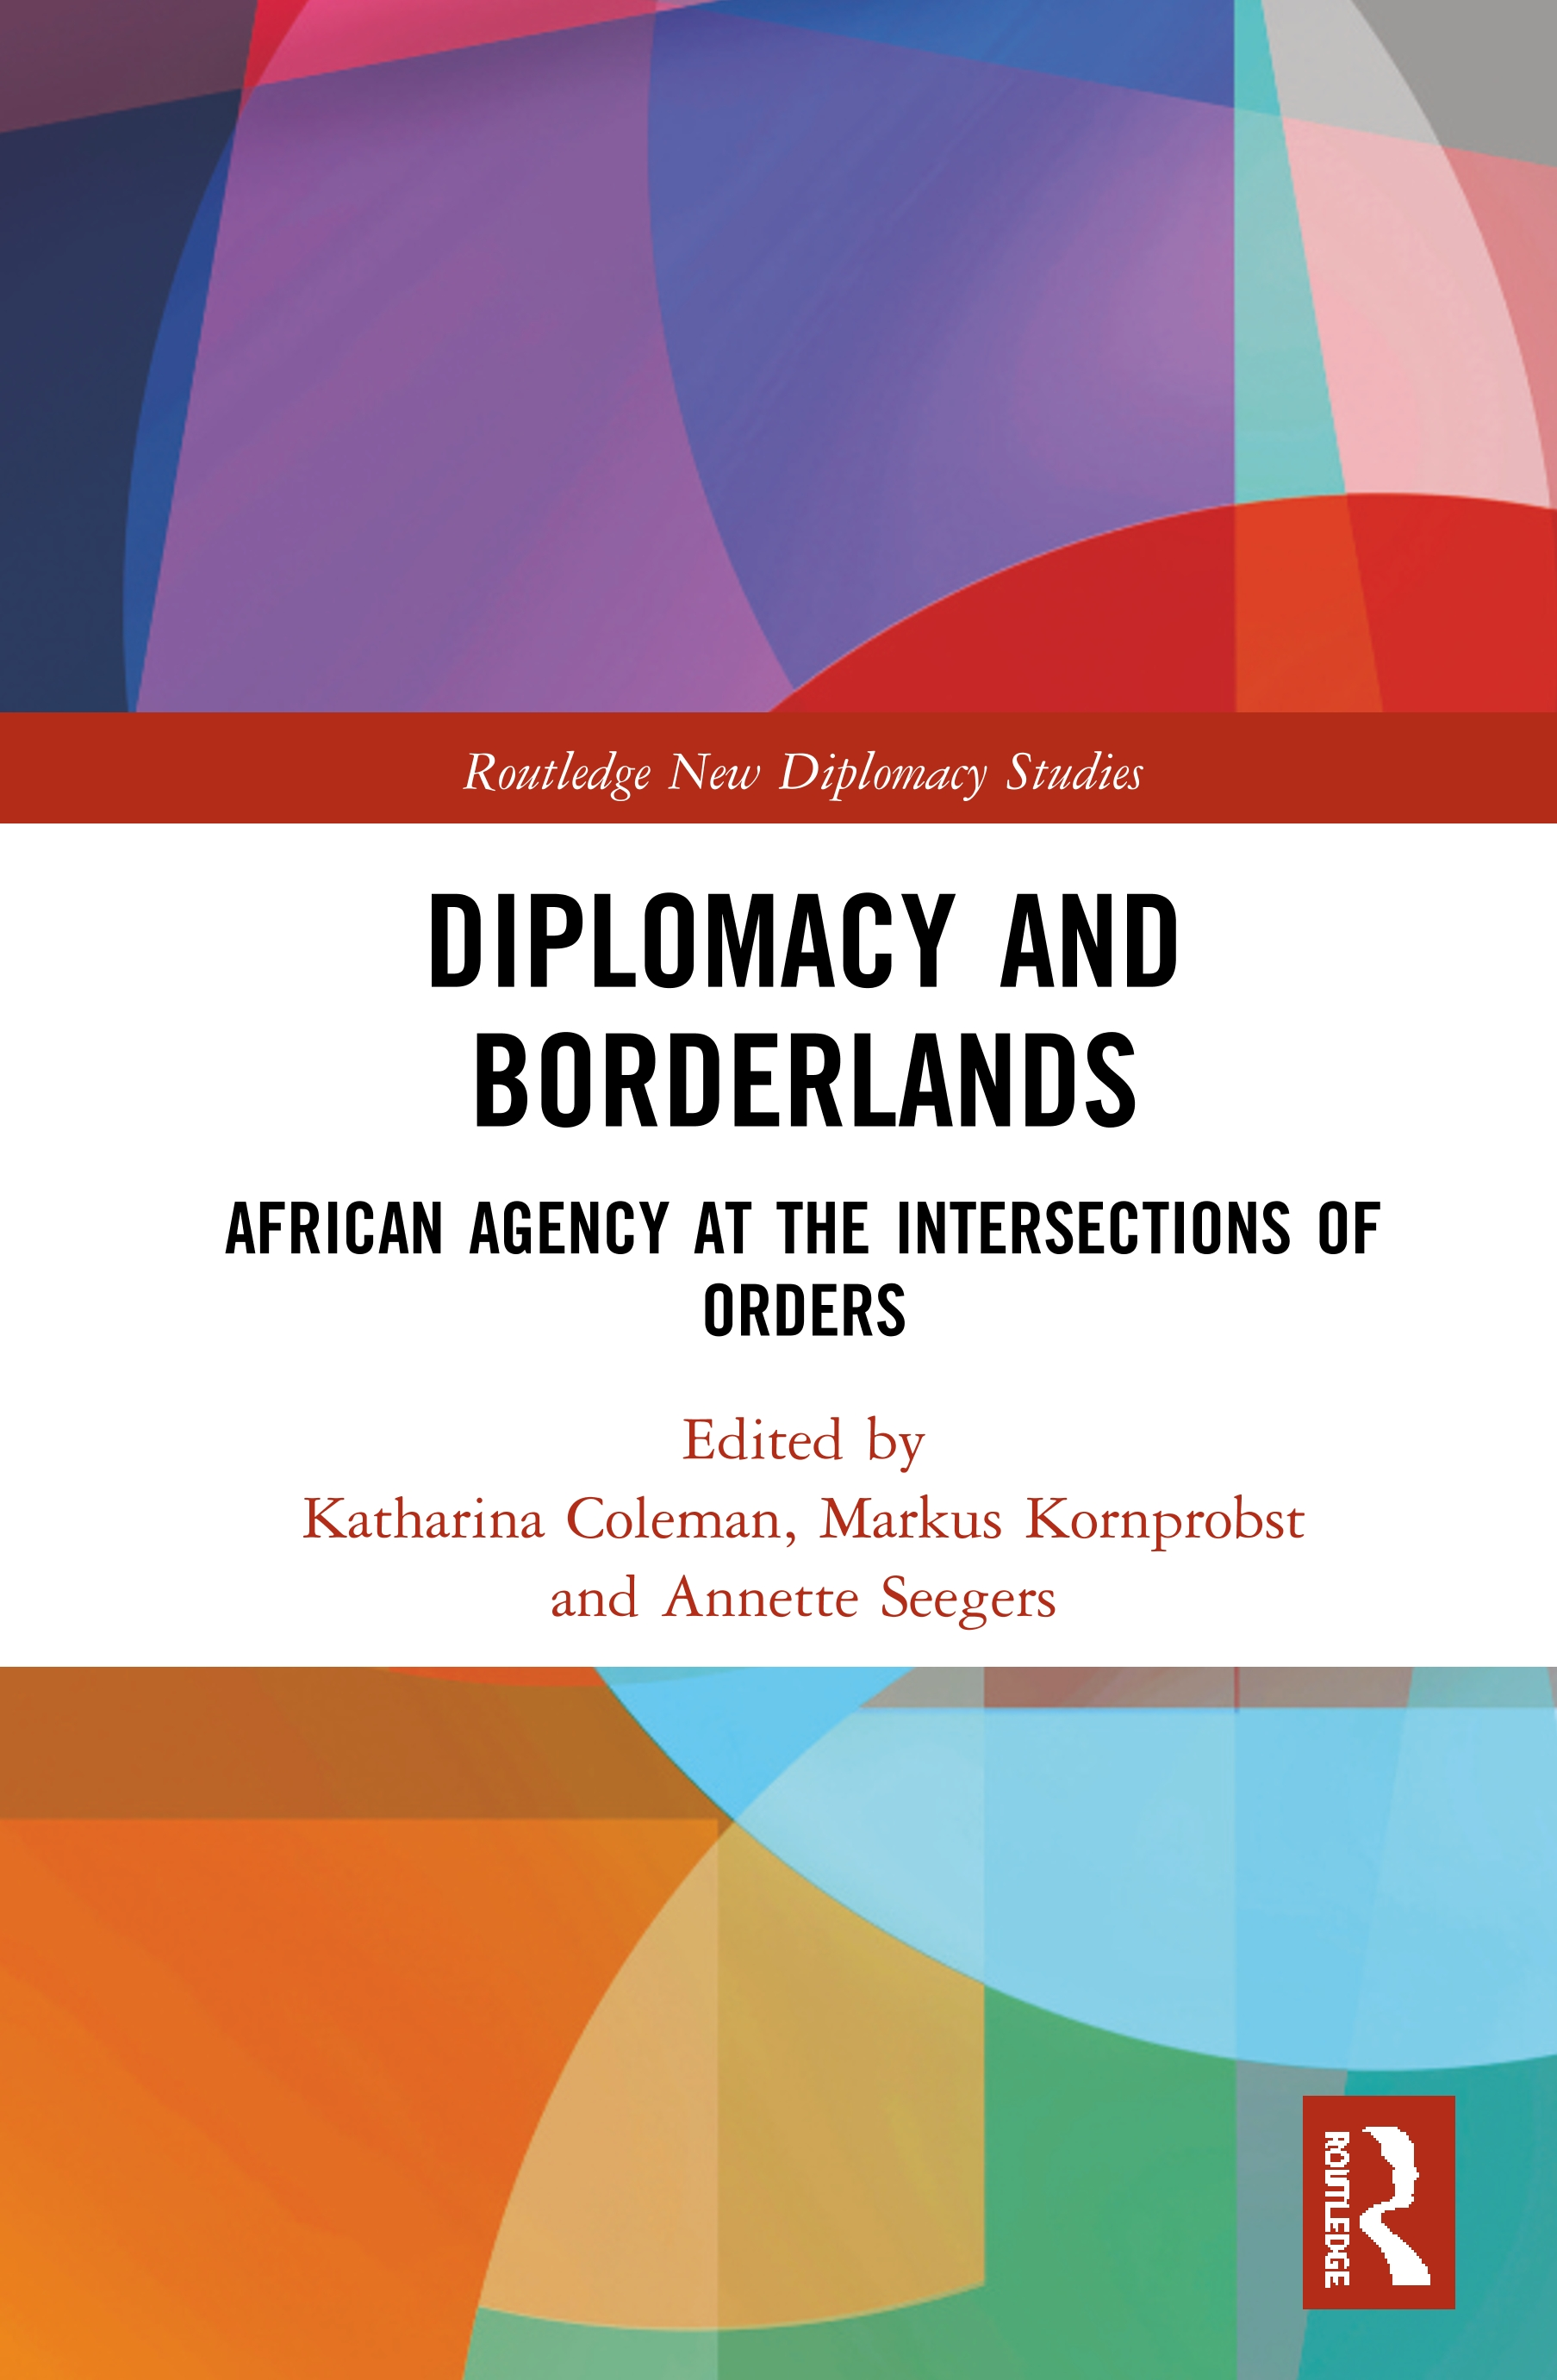 Diplomacy and Borderlands: African Agency at the Intersections of Orders book cover